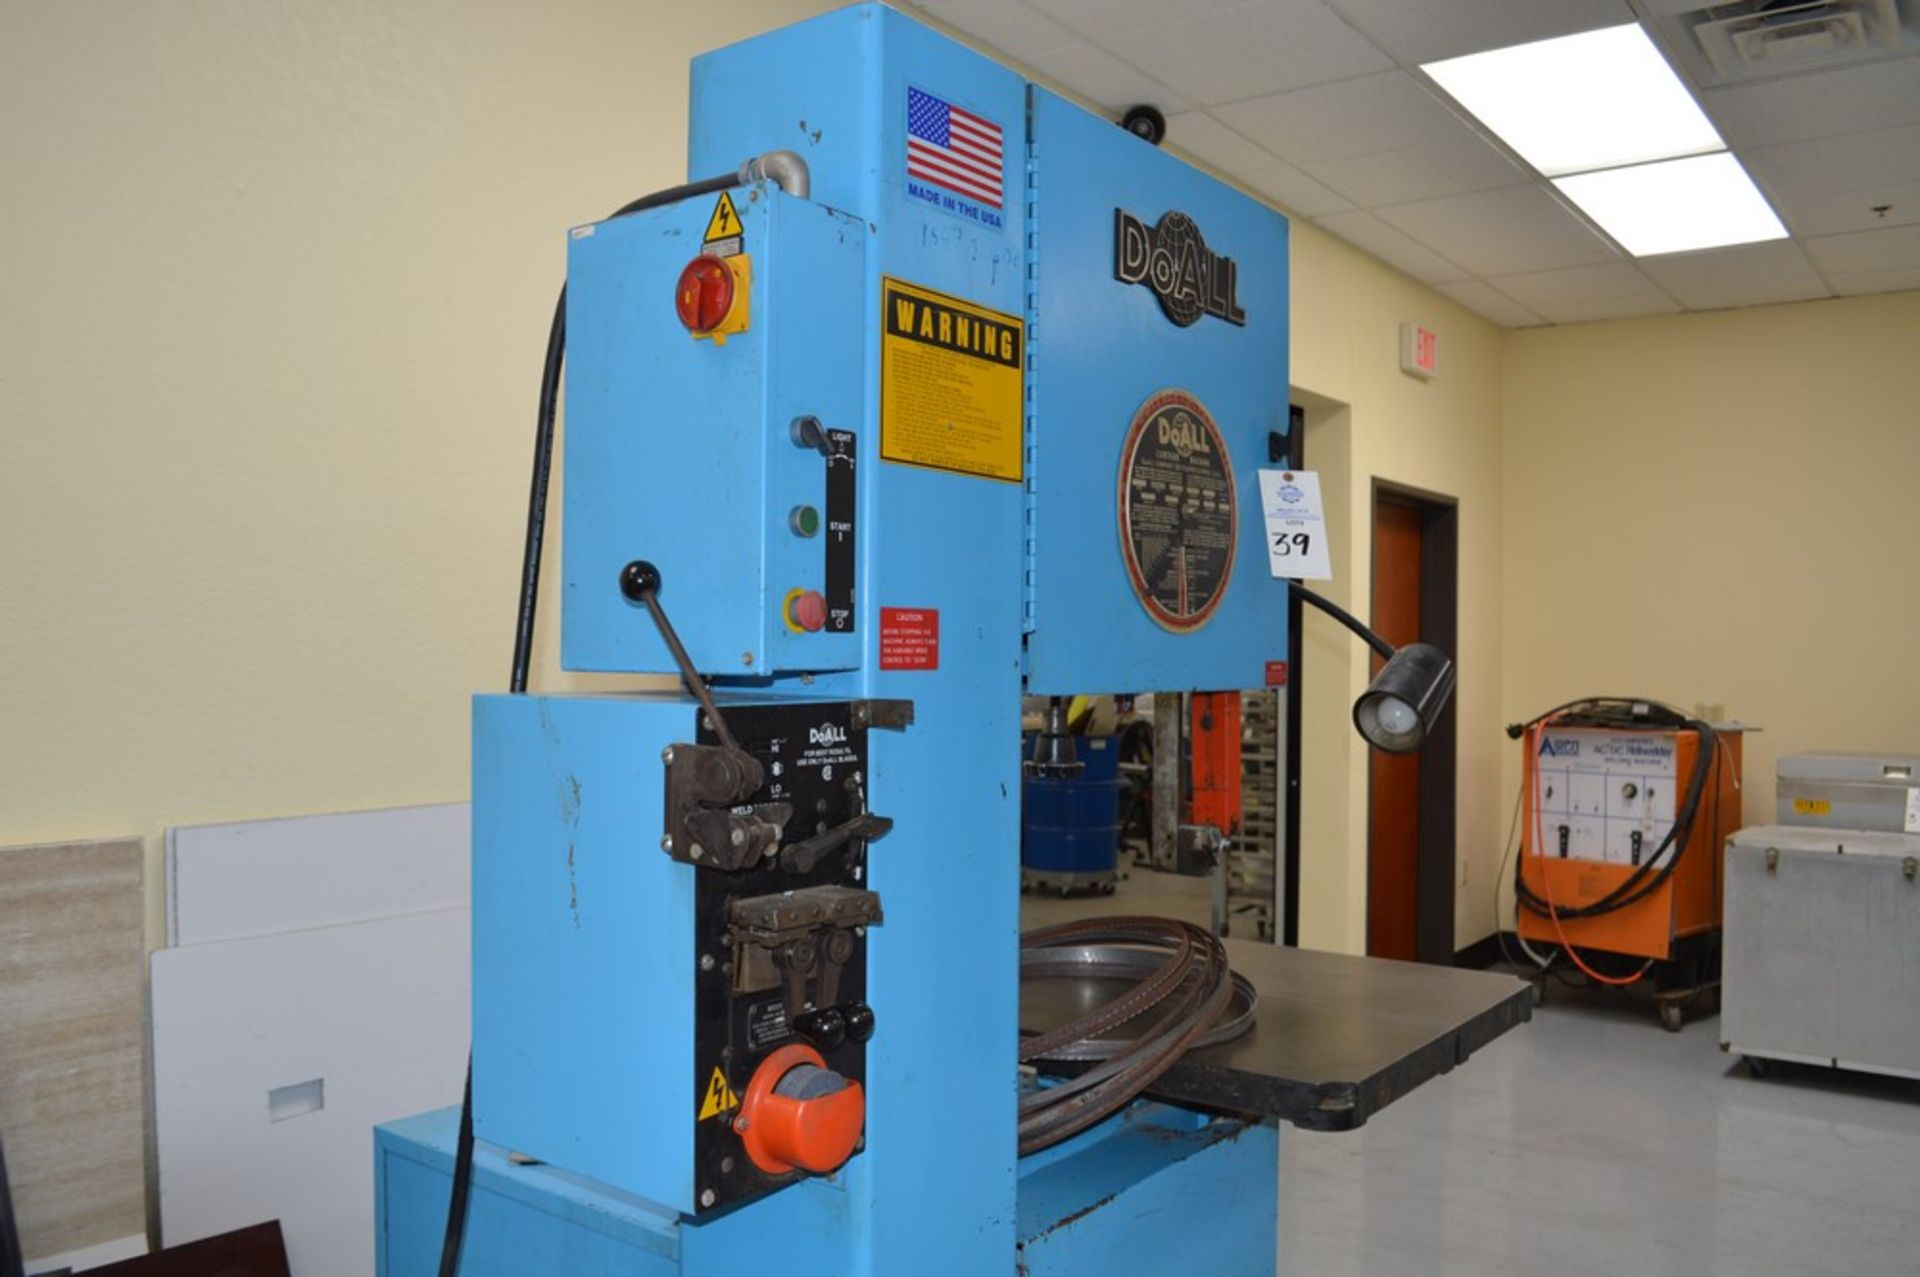 """Do-All, 2013-V, 154"""" Band, with extra bands and DBW-15 welder - Image 3 of 7"""